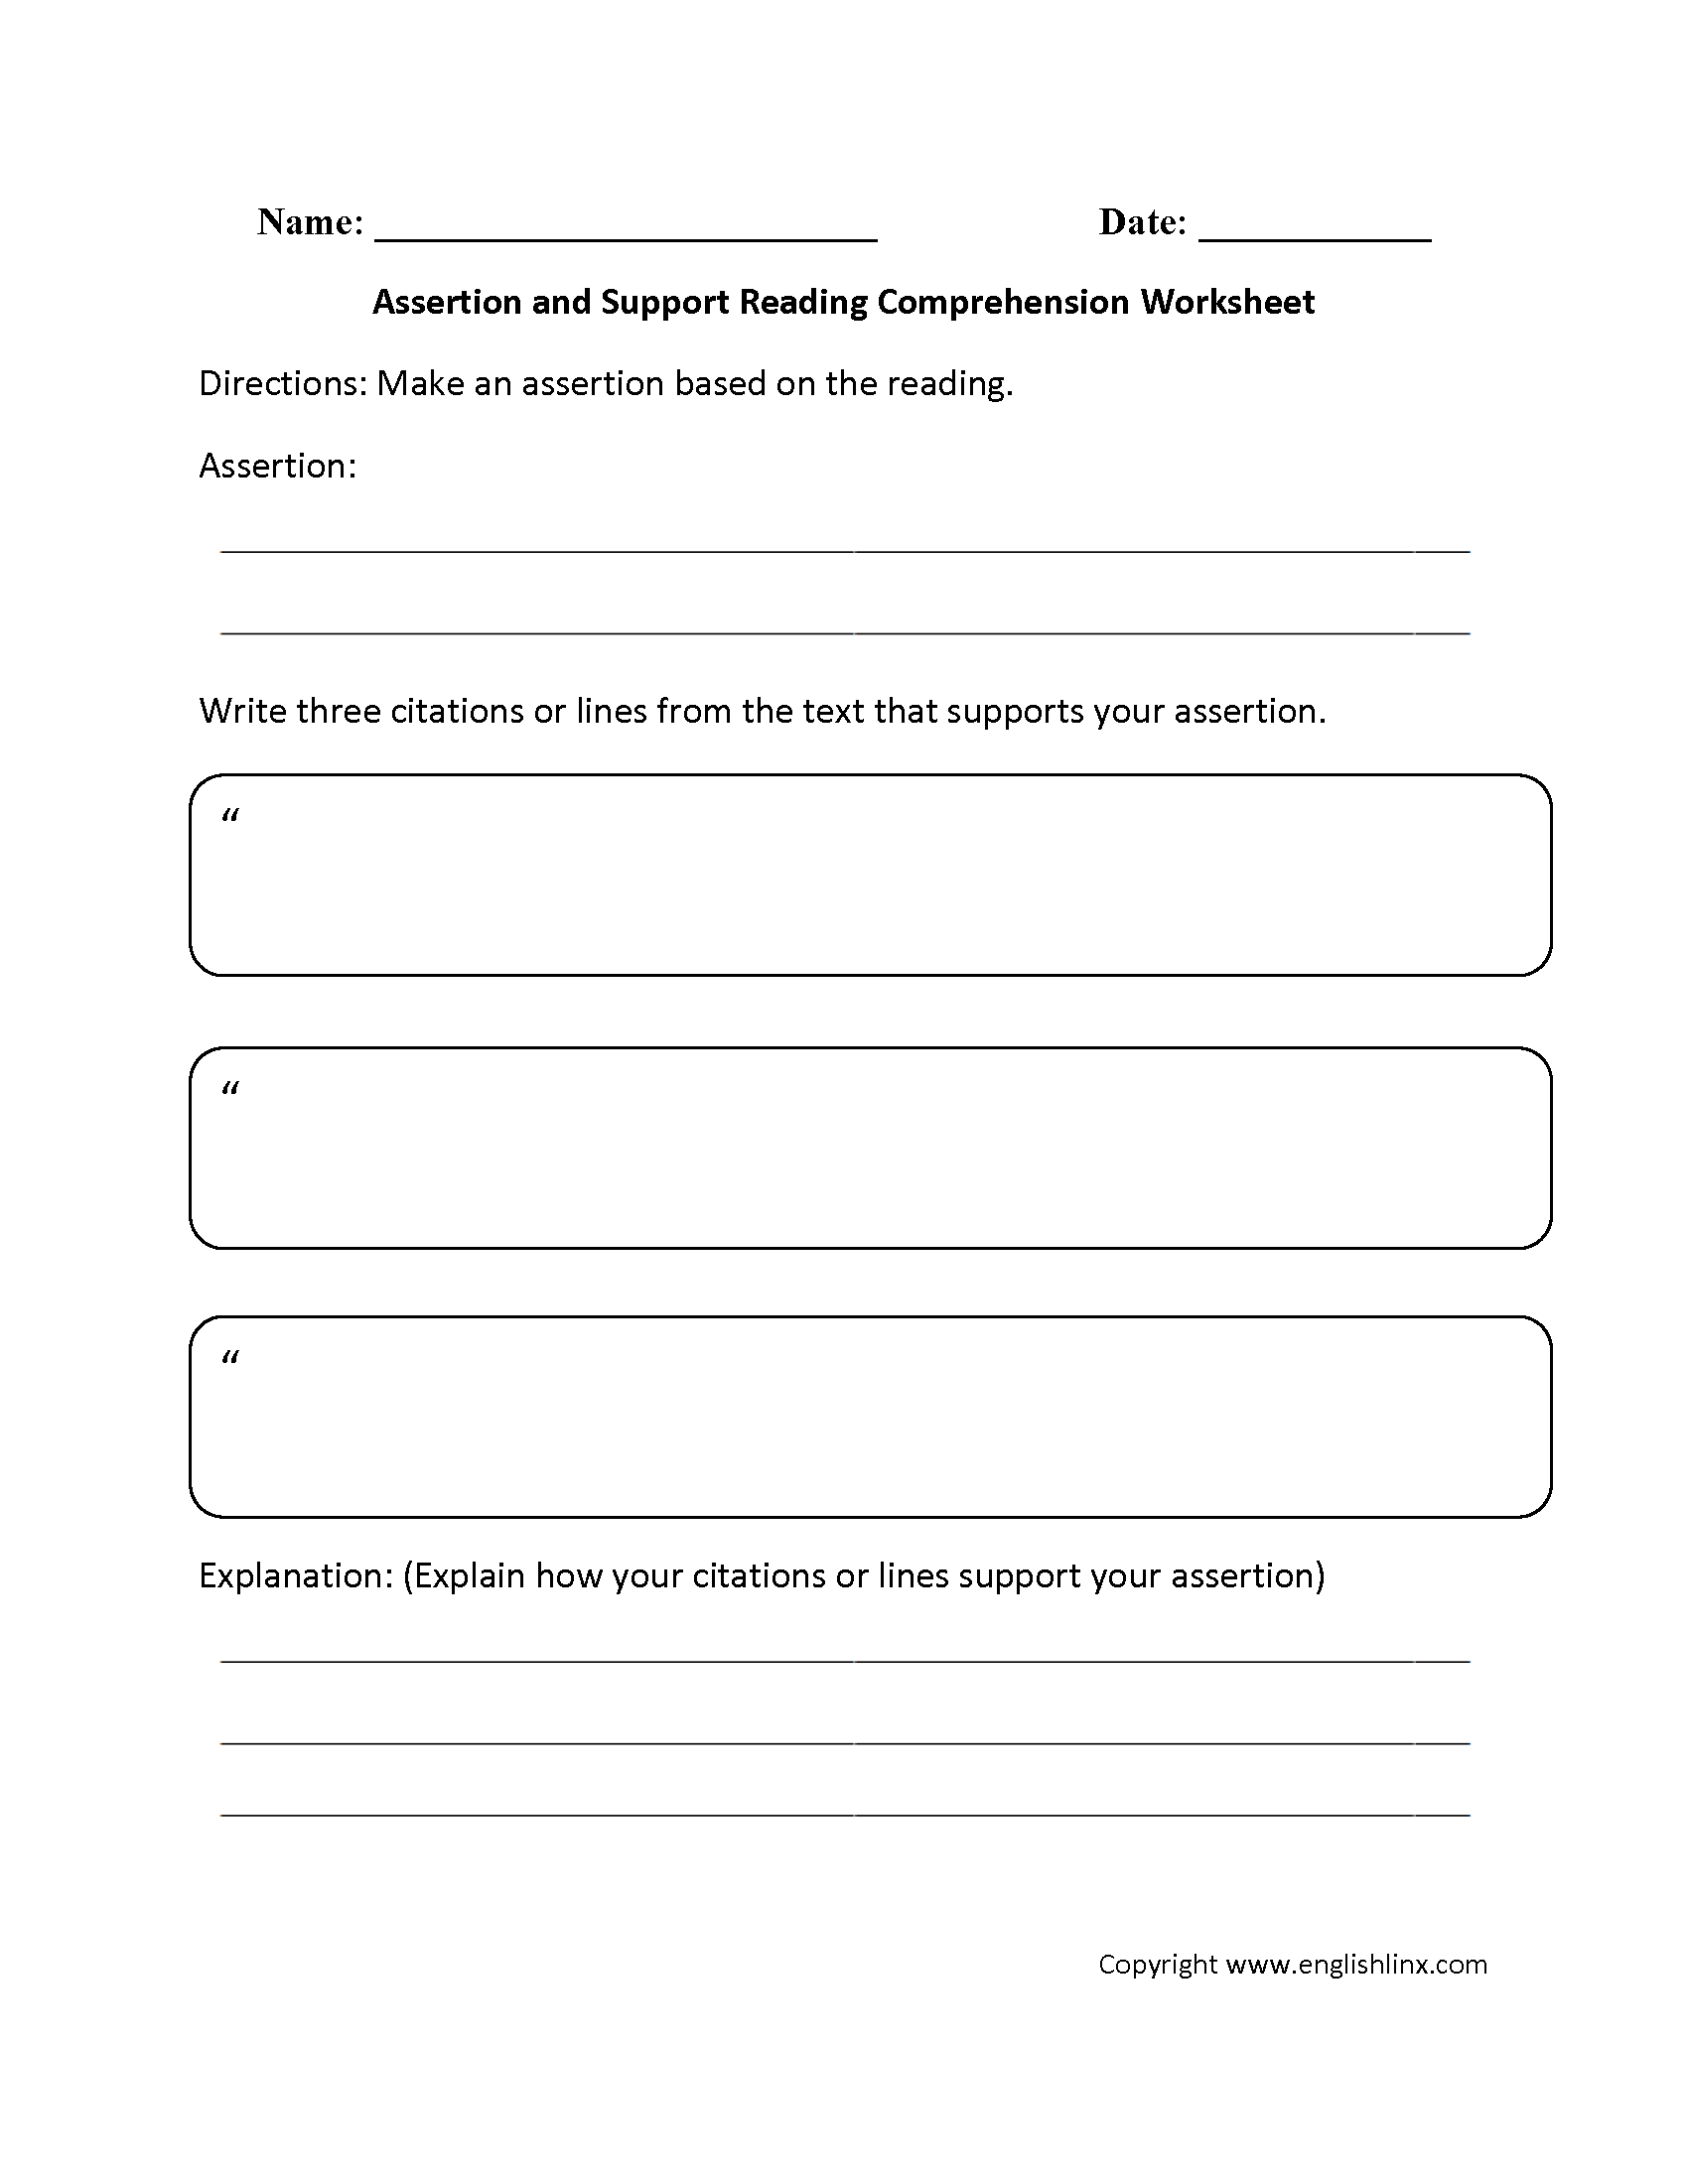 Printables Reading Comprehension Worksheets For Adults englishlinx com reading comprehension worksheets worksheet